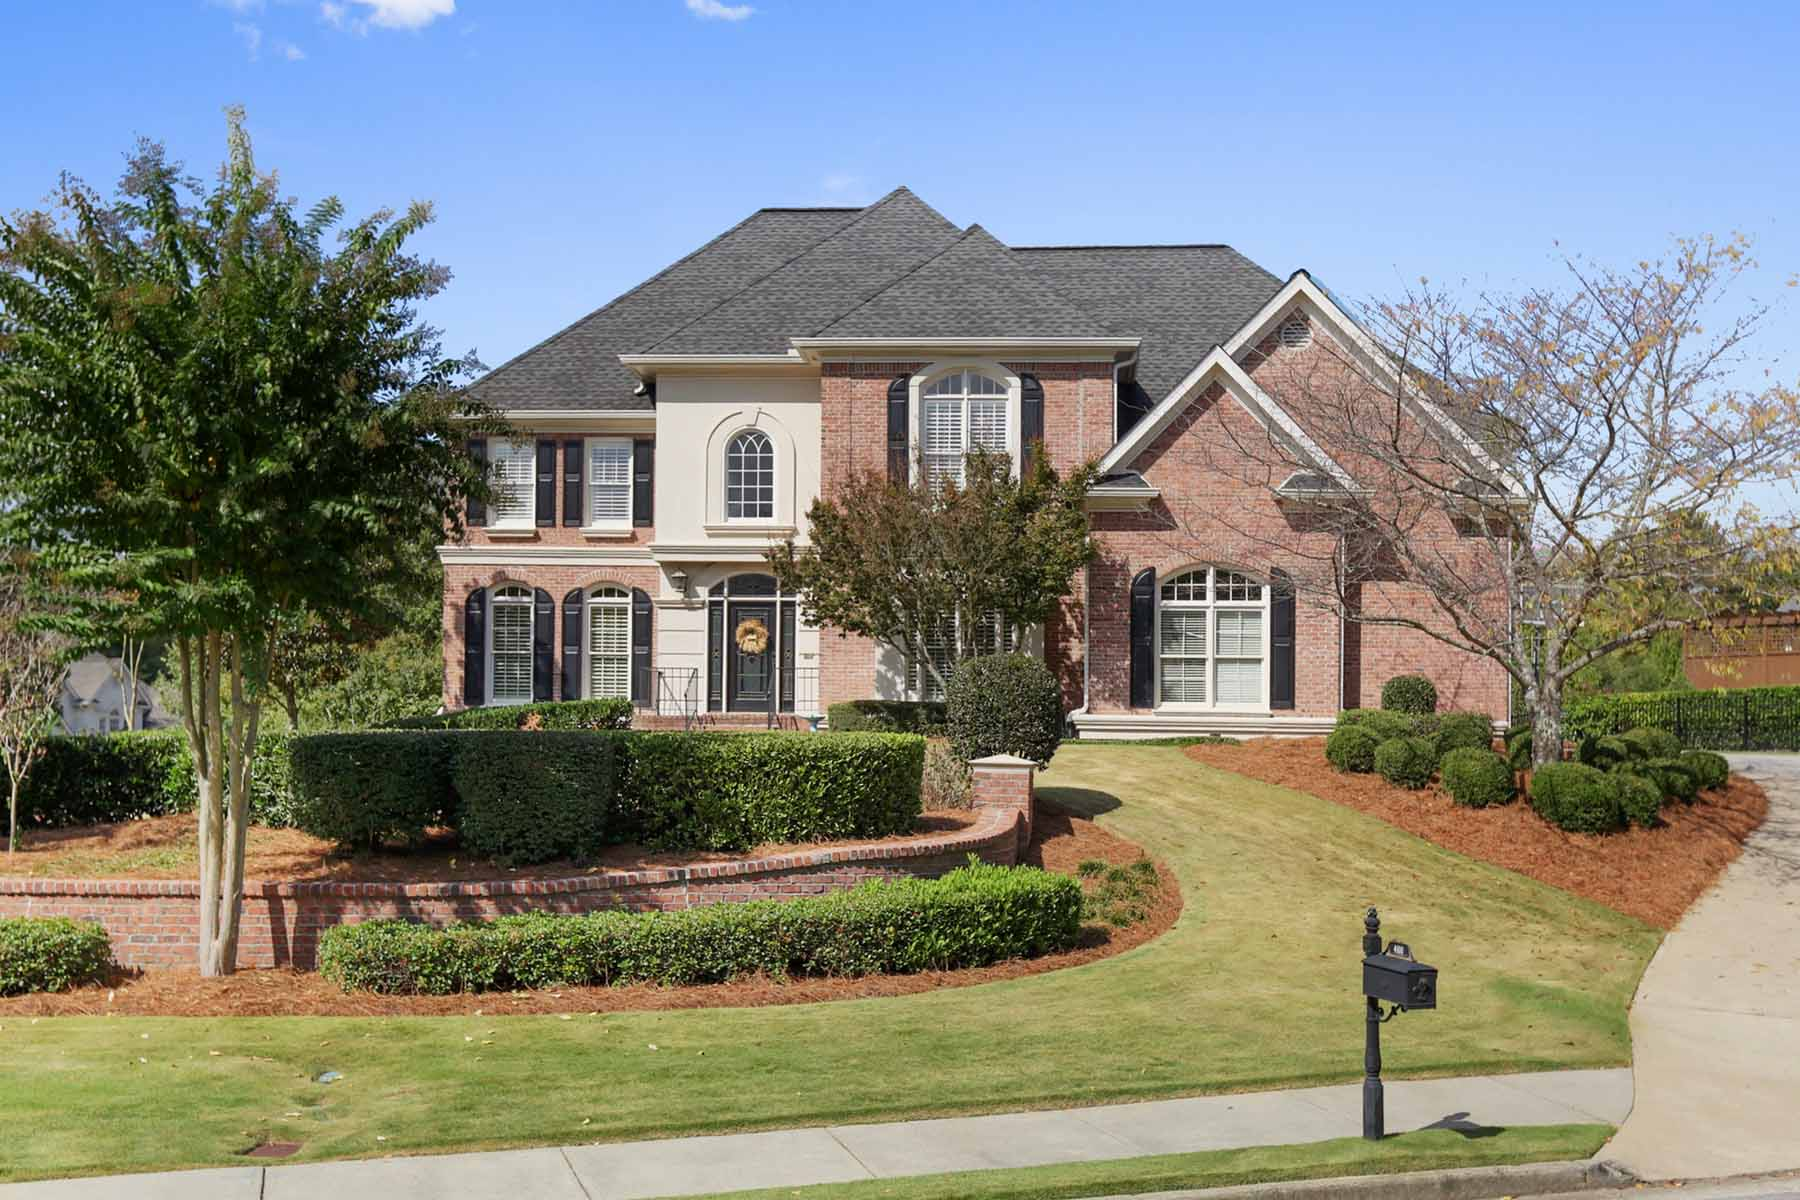 Villa per Vendita alle ore Fabulous Brick Traditional Home in Popular Wellington Lake 4100 Wellington Lake Peachtree Corners, Georgia, 30097 Stati Uniti